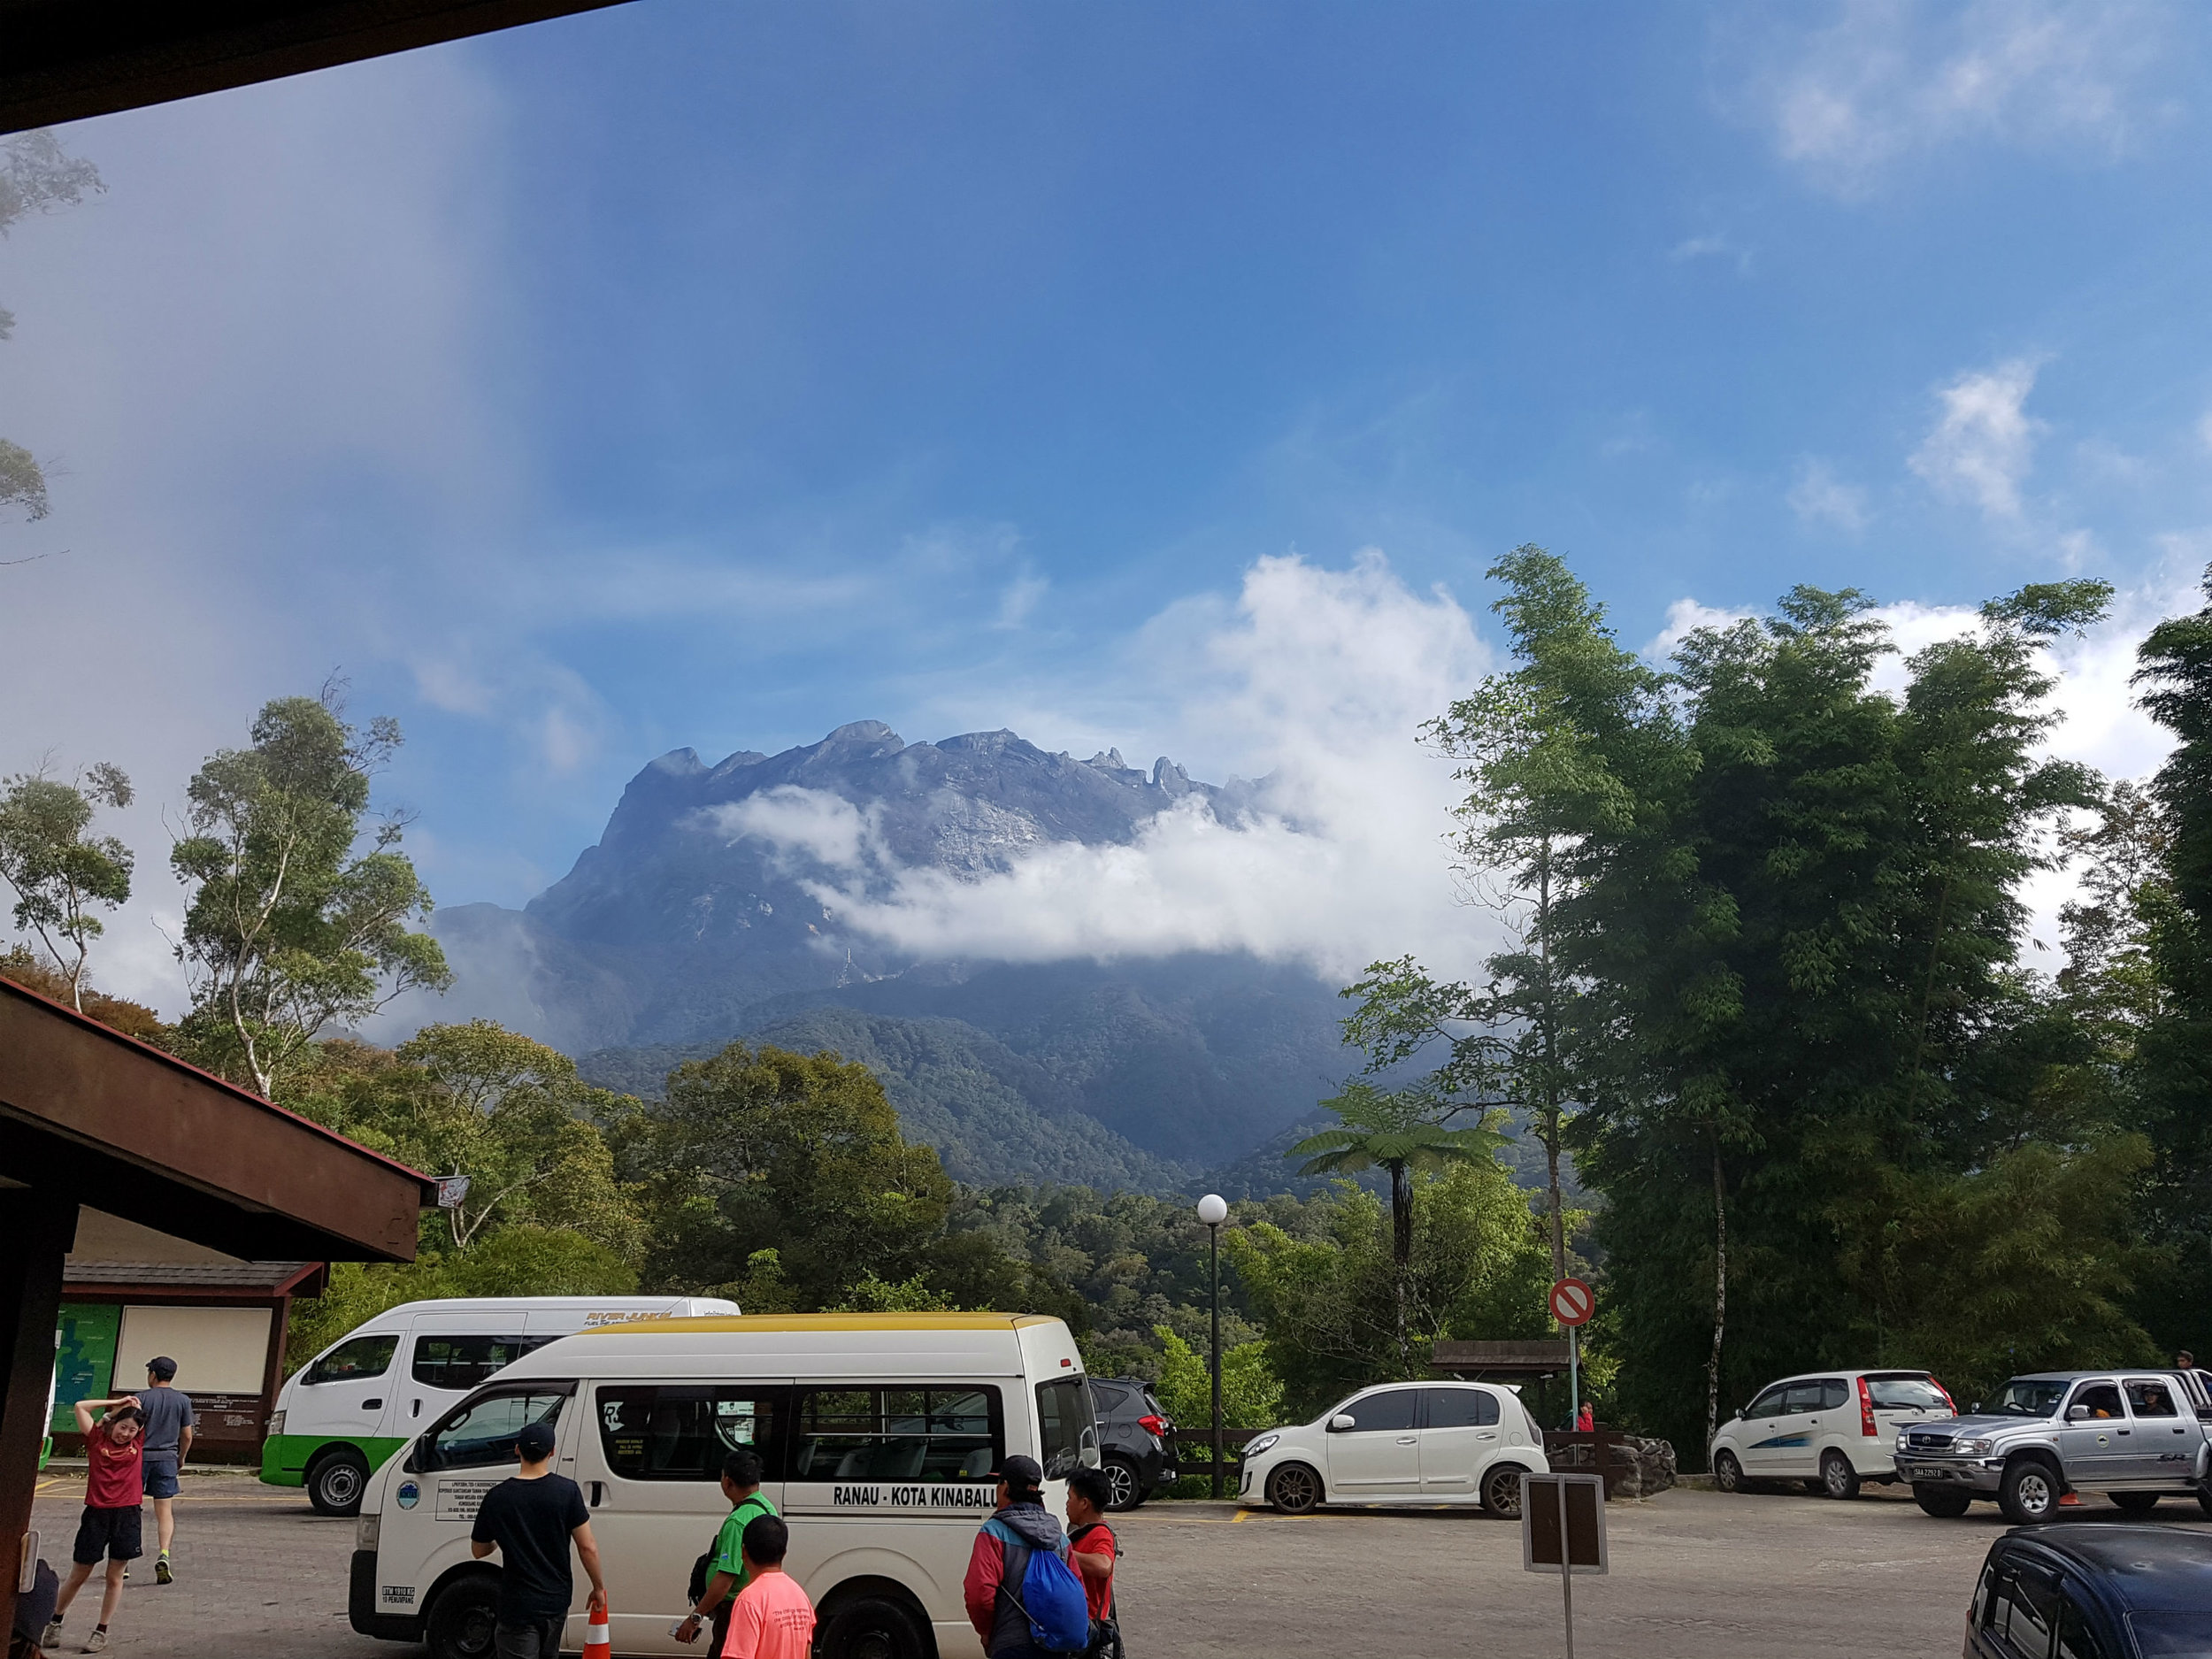 Mount Kinabalu Park Head Quarters at 1850 mtr.